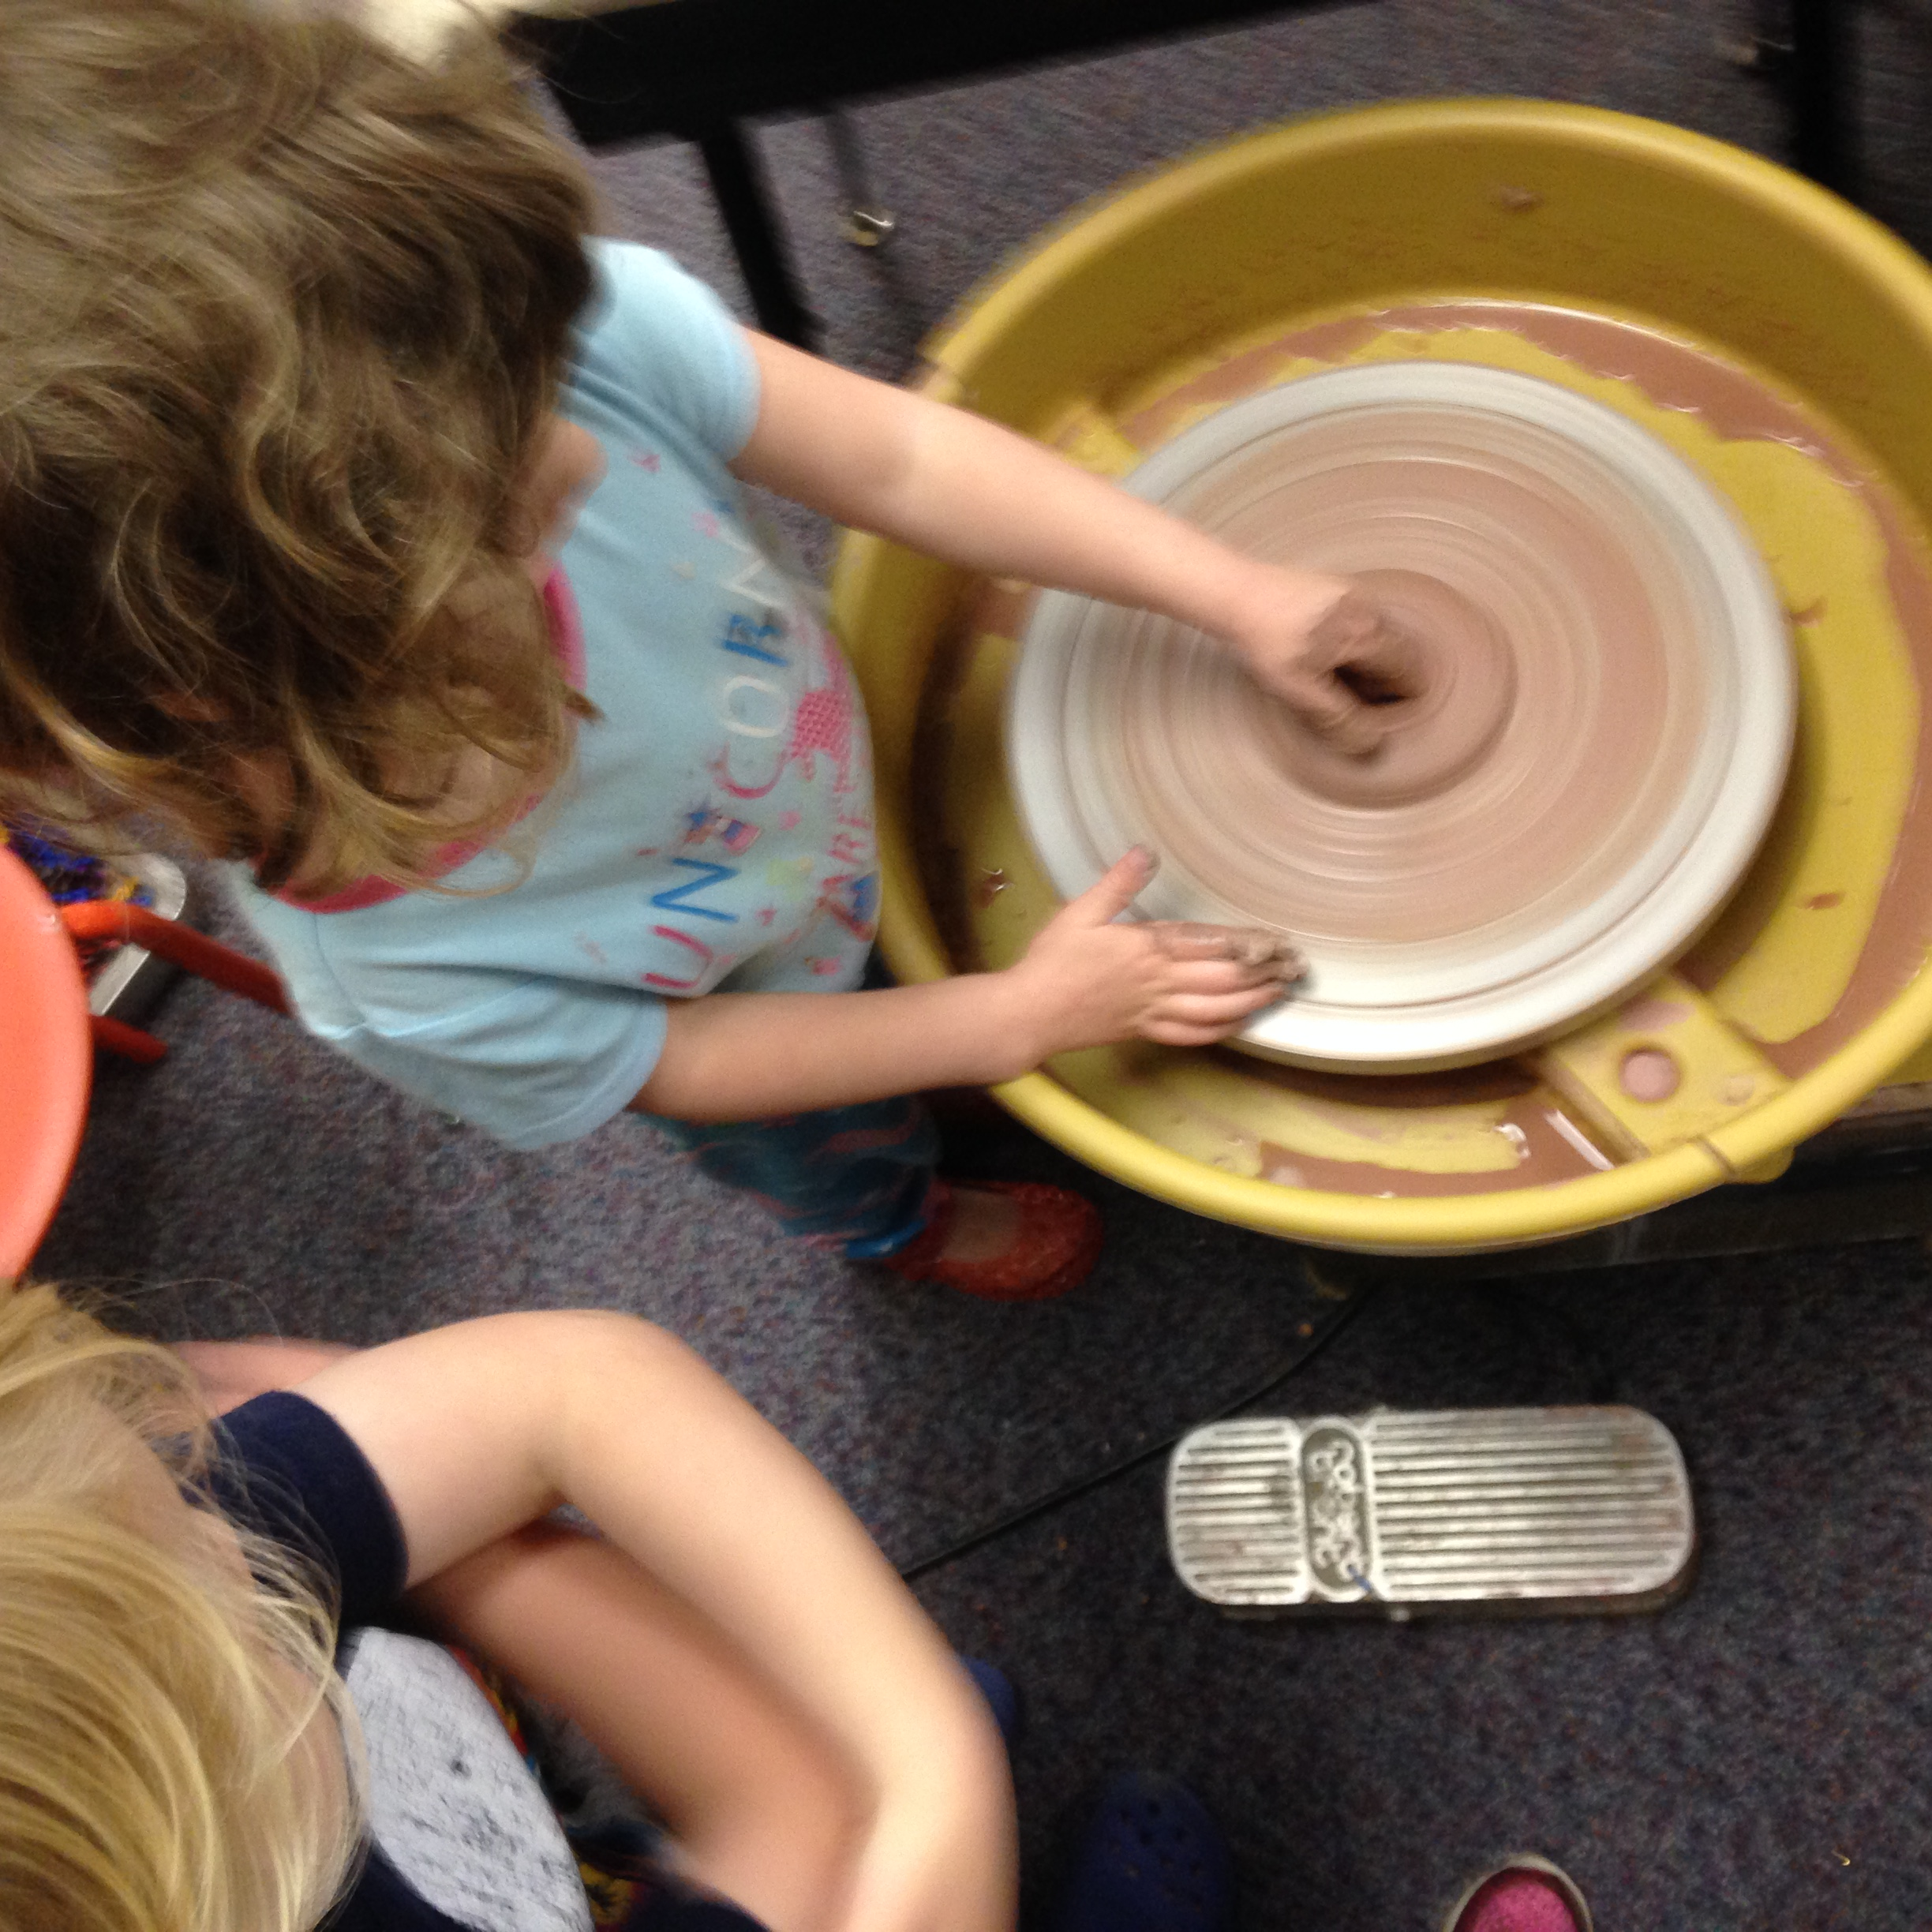 We got started on the pottery wheel, building up layers for volcanos.